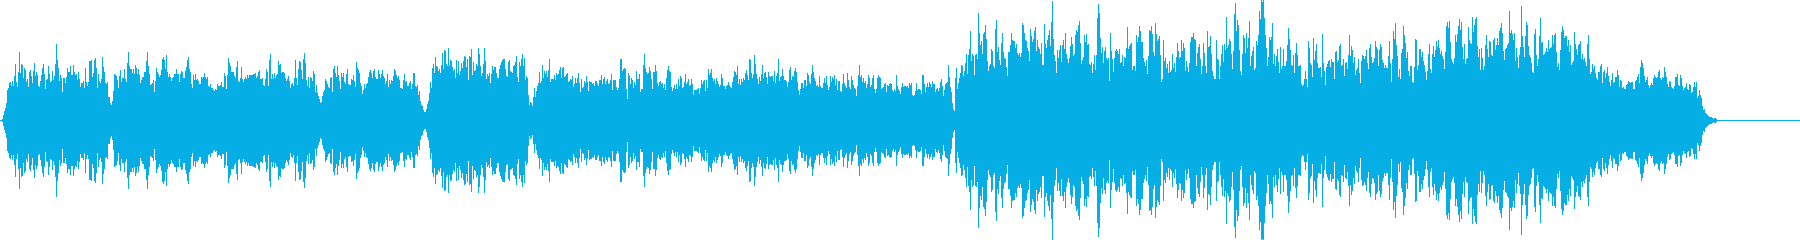 Melody with a sense of unity in the sound's reproduced waveform